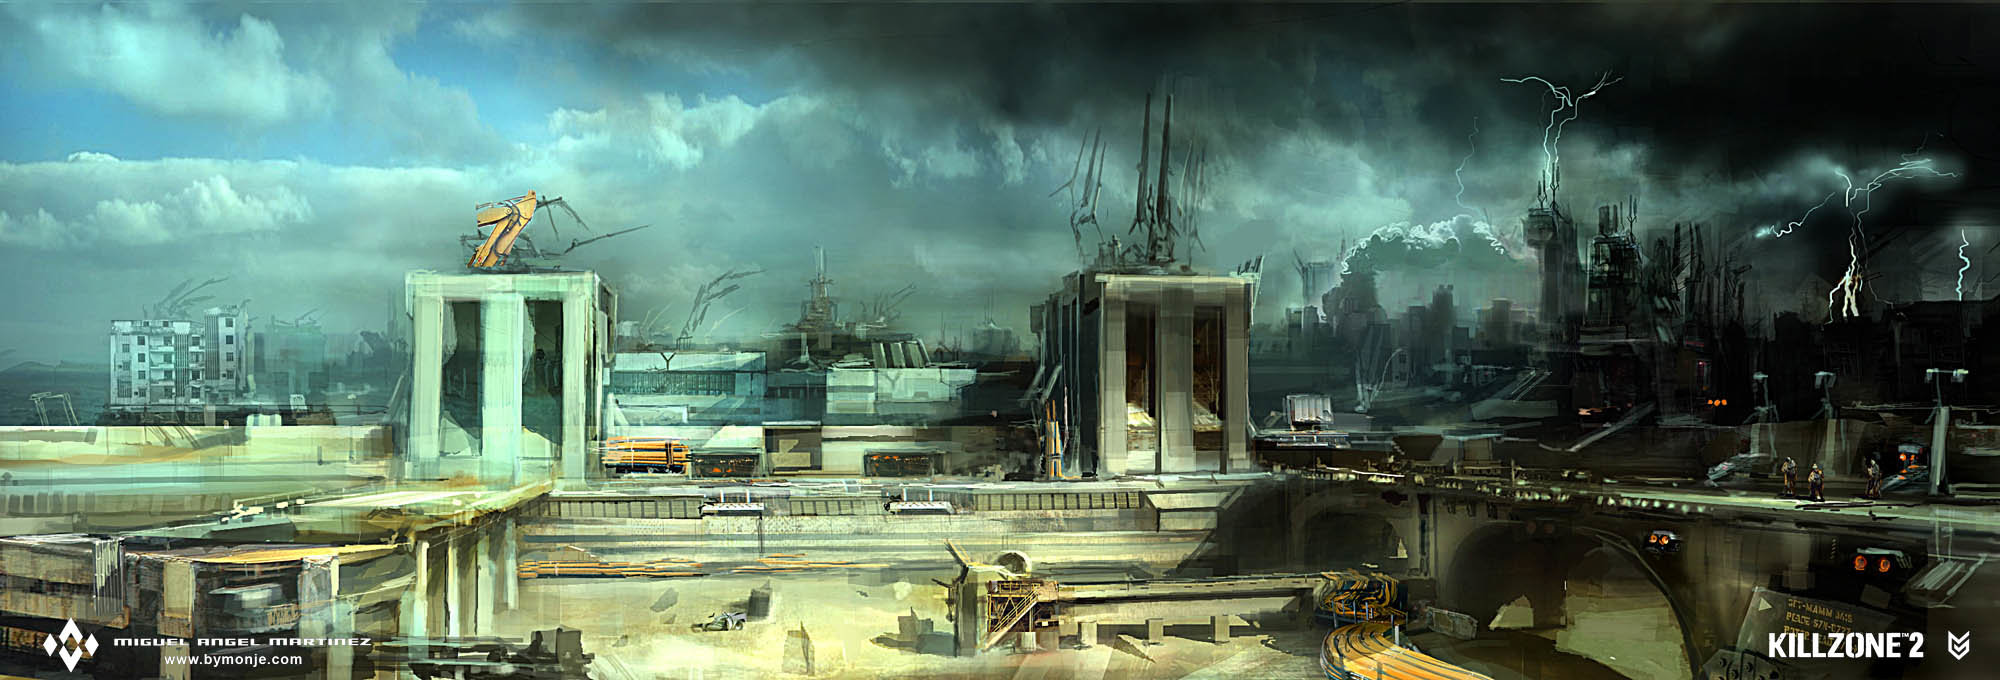 killzone-2-phyrrus-architecture-concept-art-miguel-bymonje